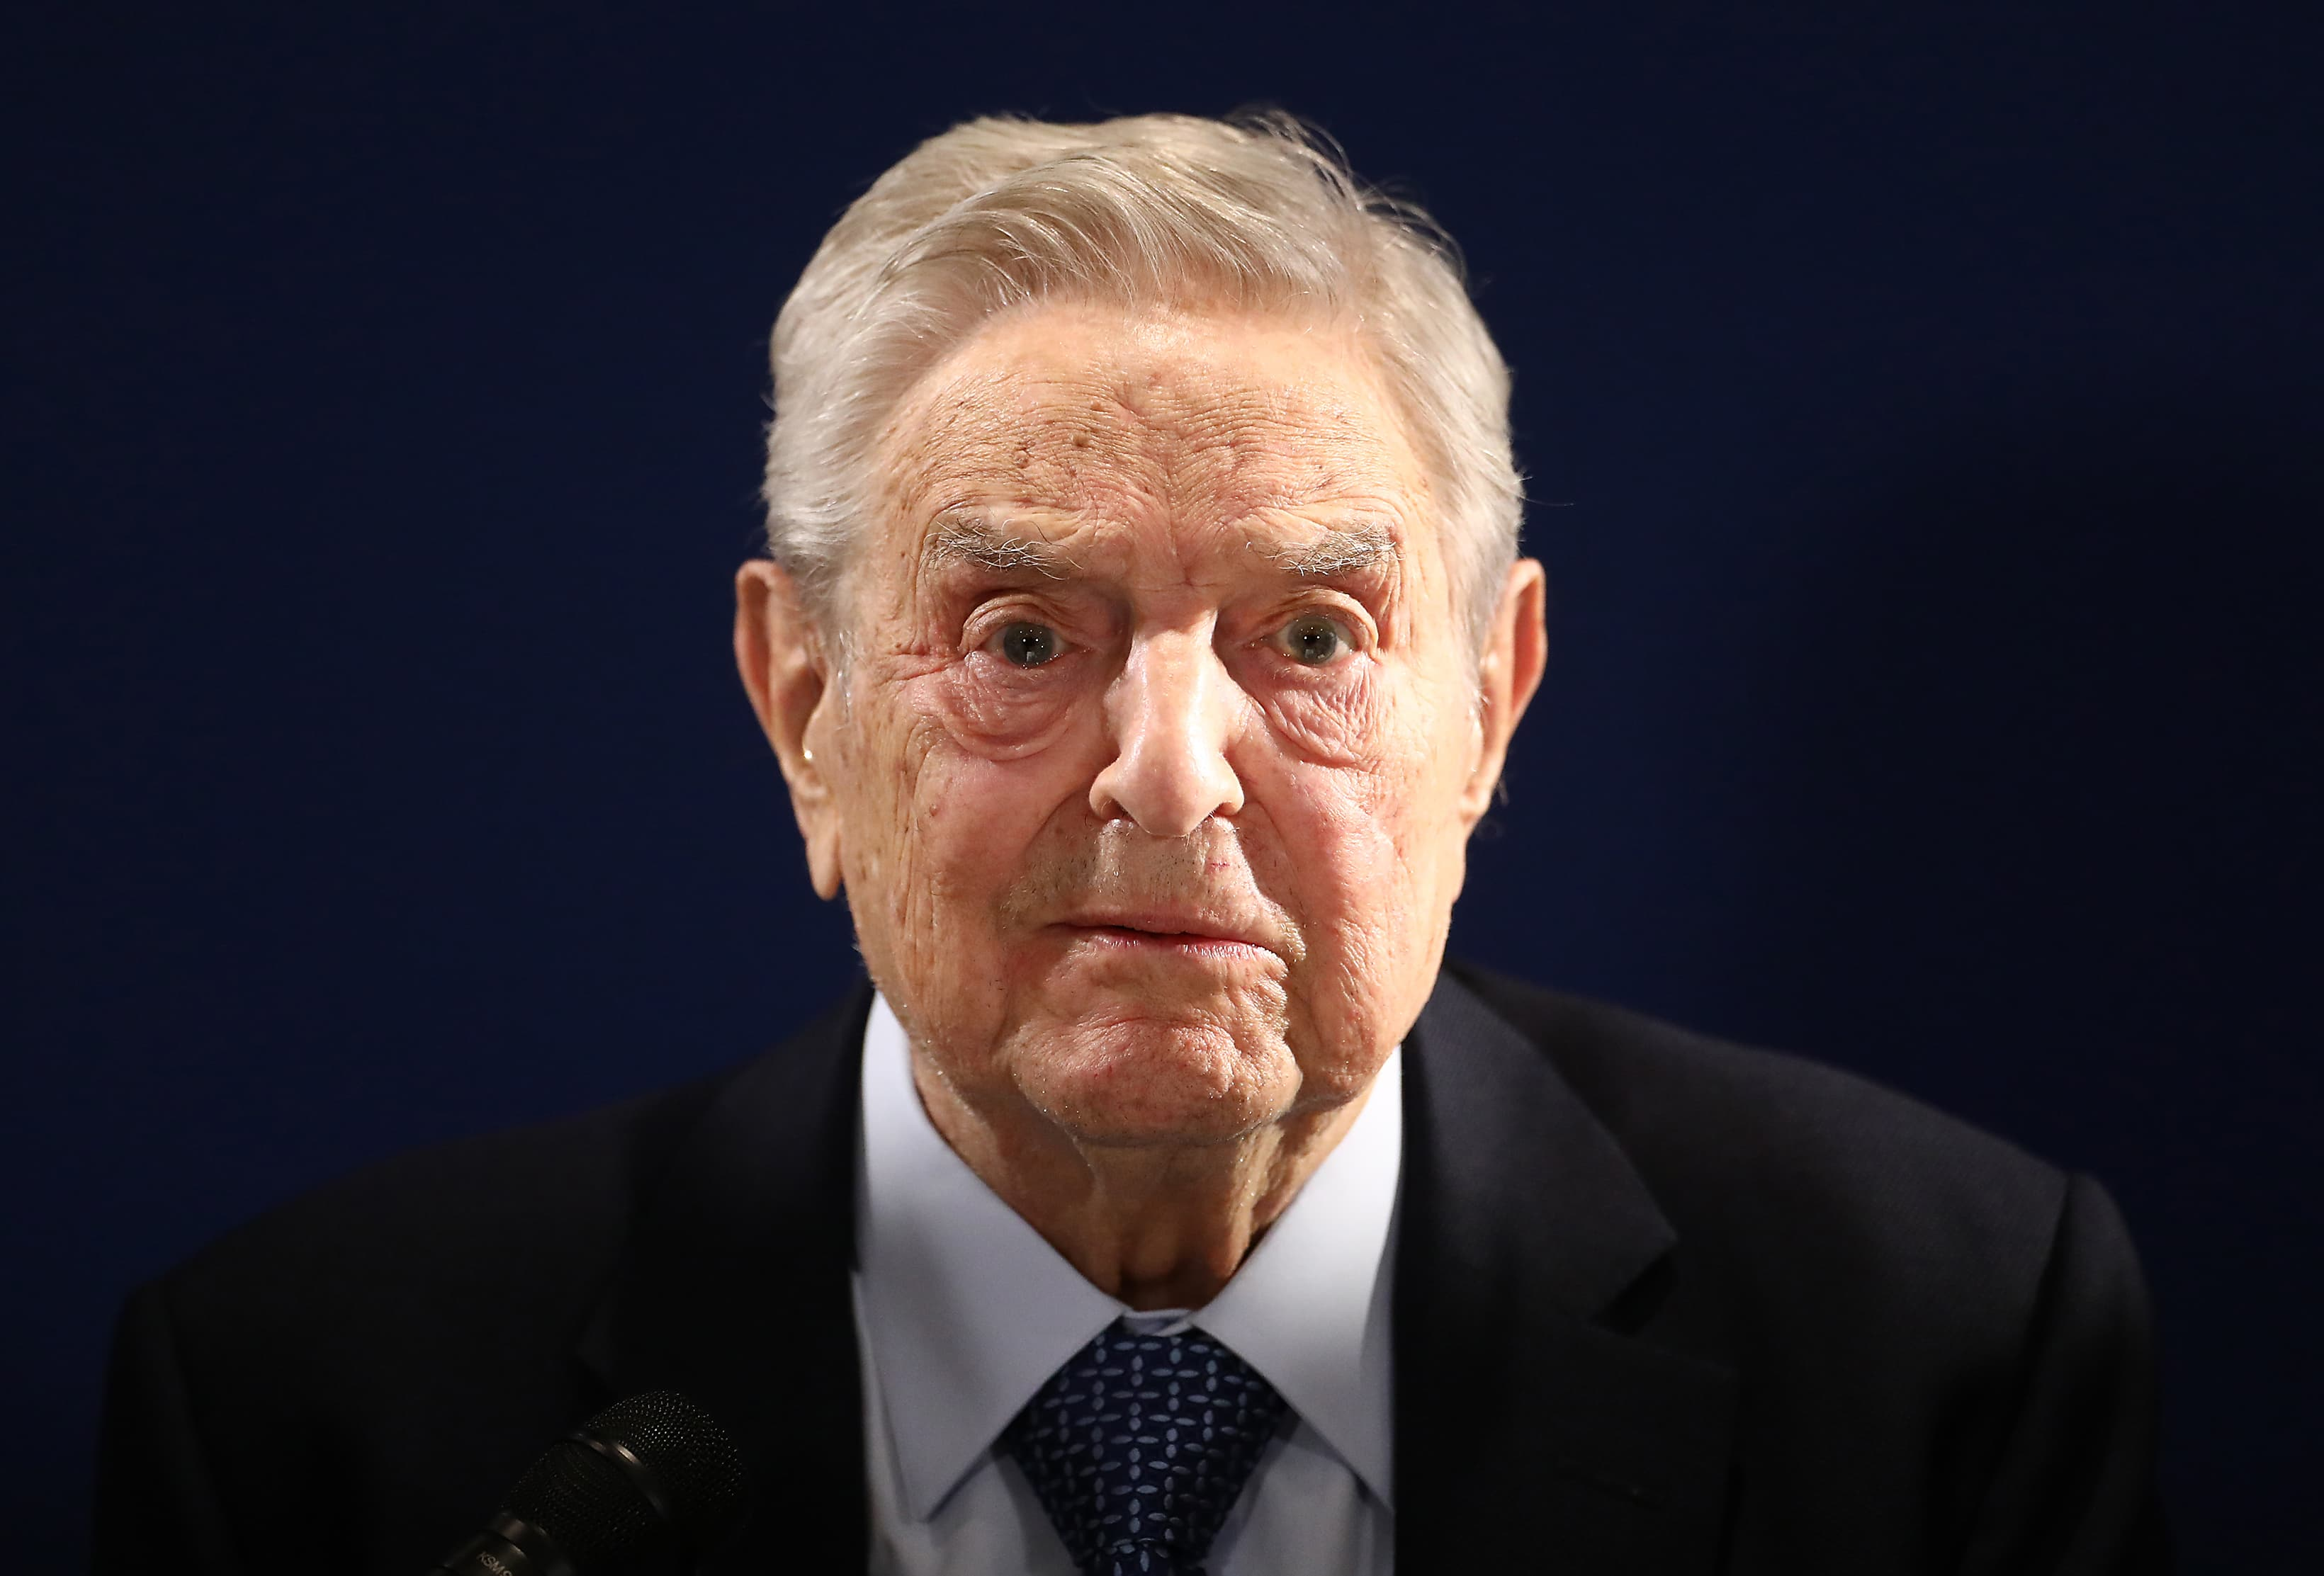 George Soros warns Trump of potential economic doom before election